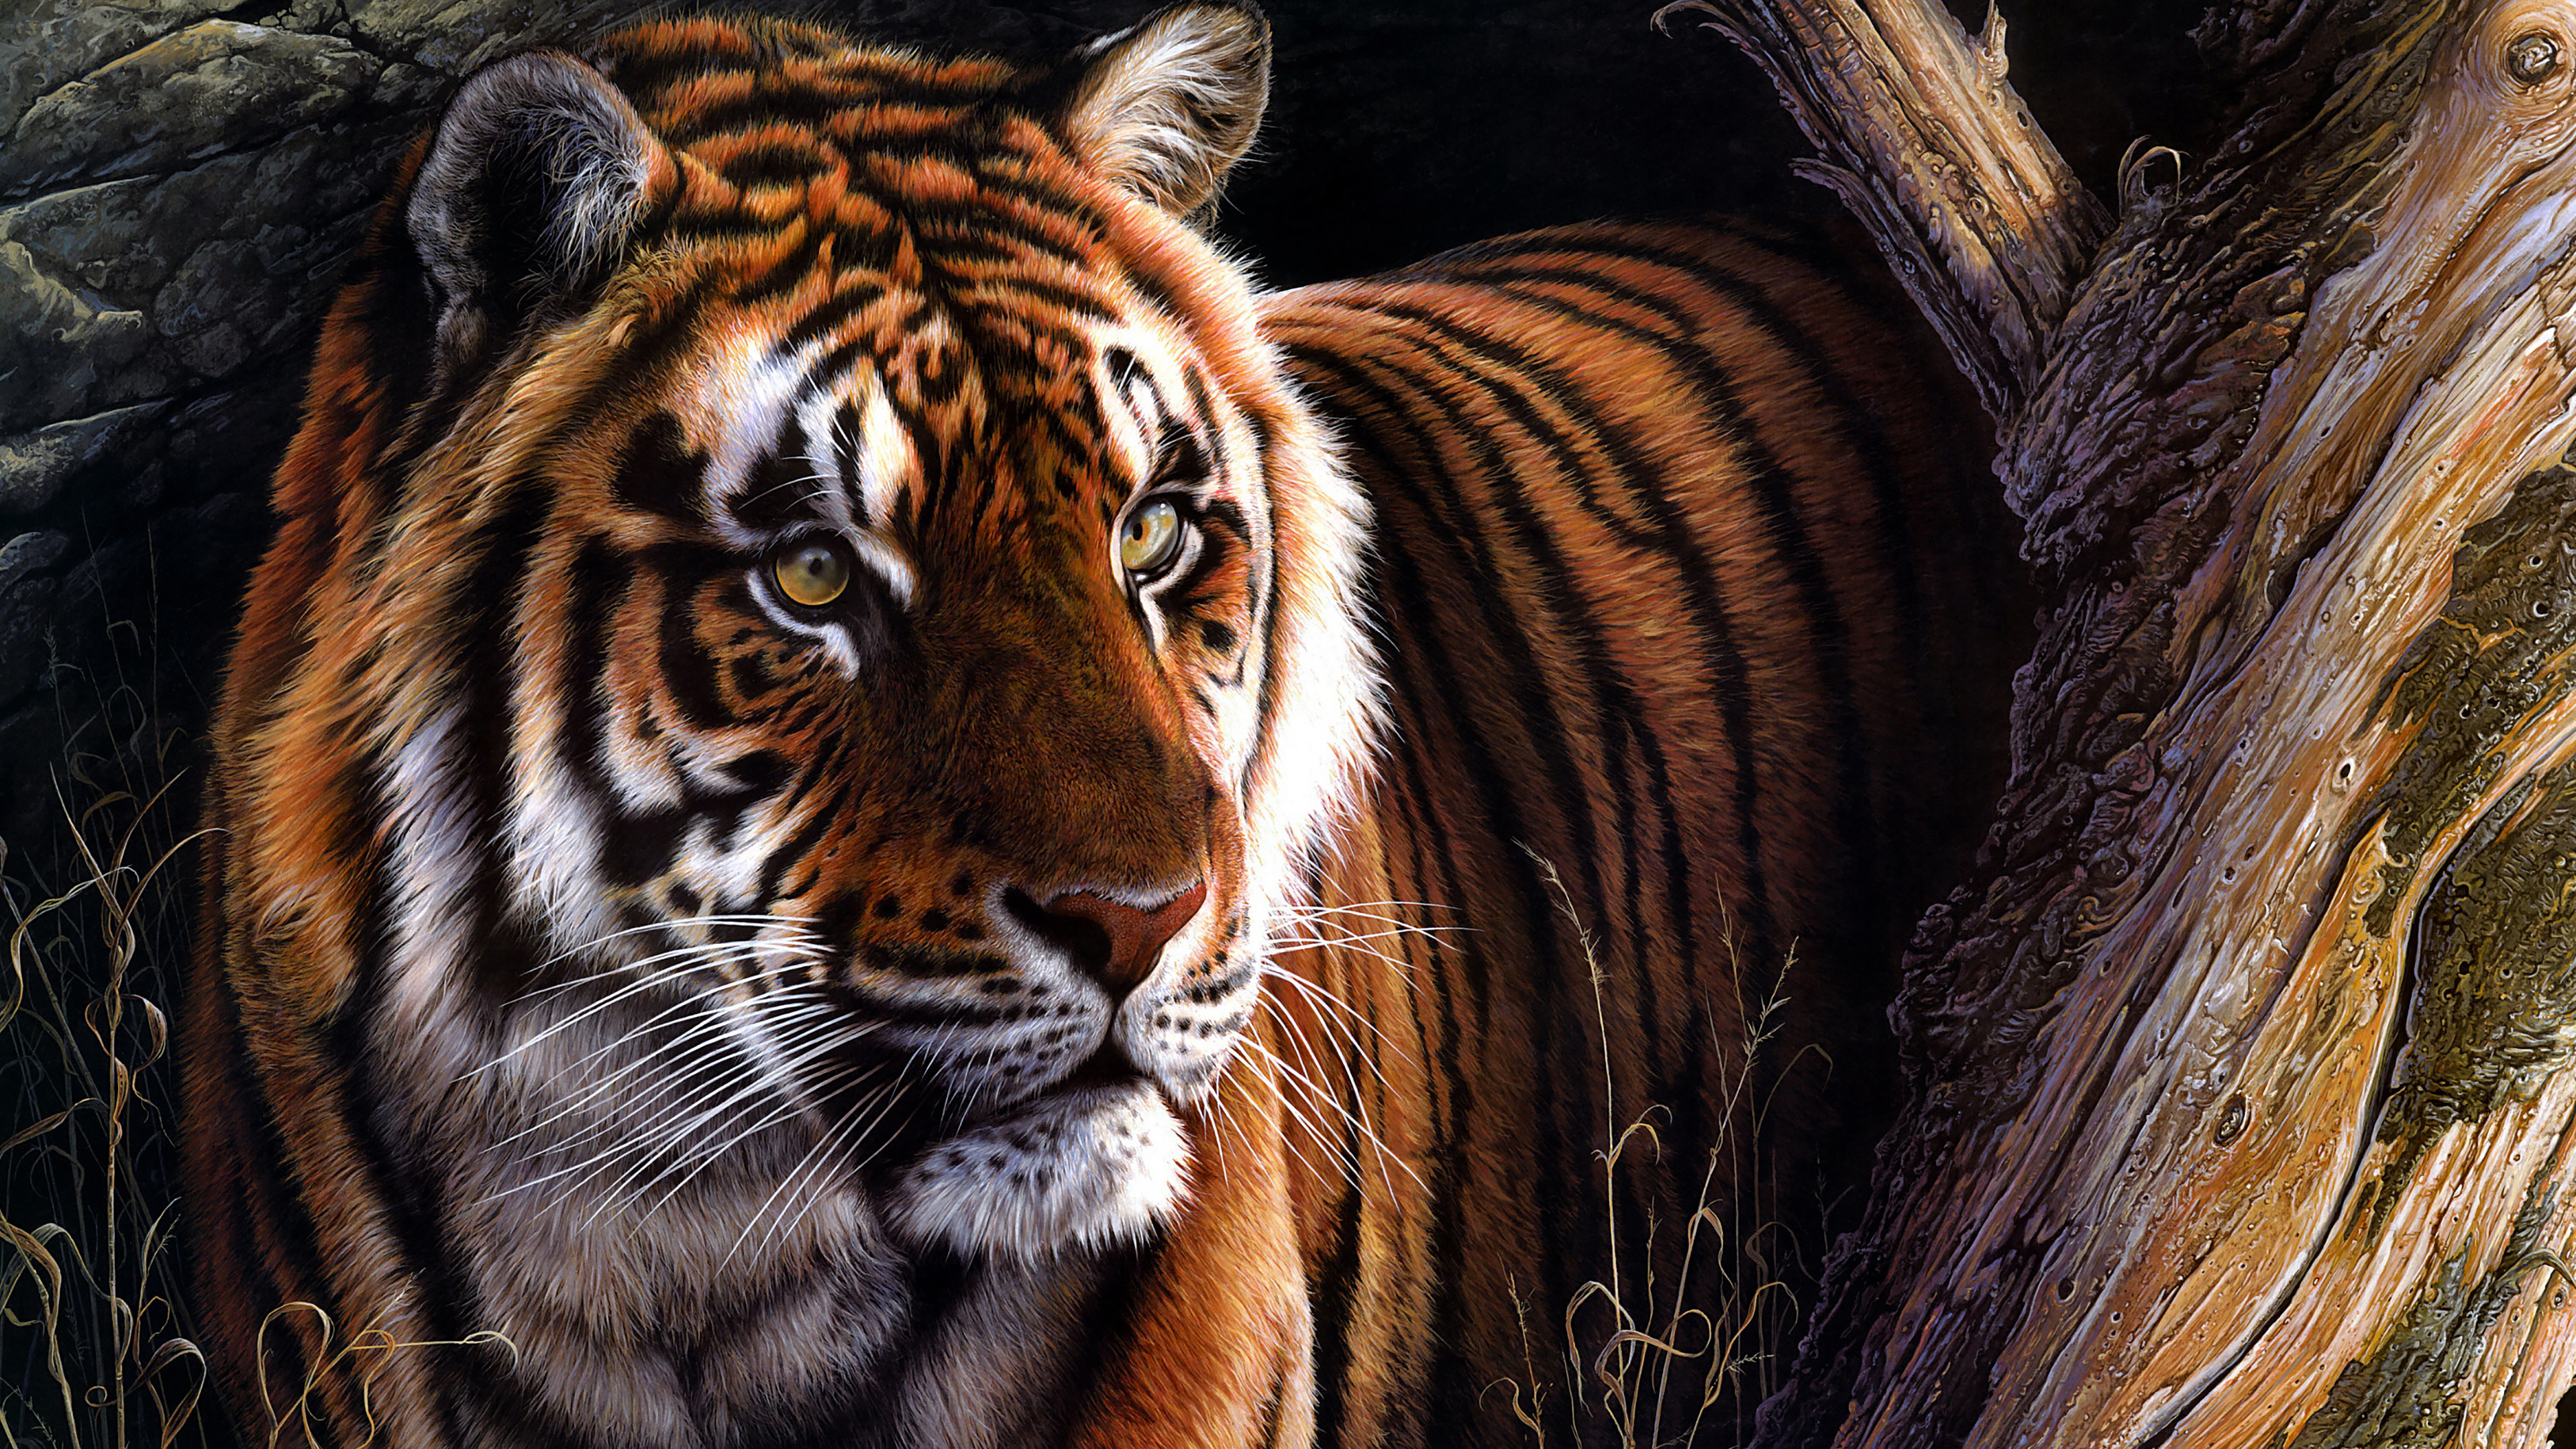 Tiger Oil Paint 4k 4k Animal Wallpaper For Mobile 3840x2160 Wallpaper Teahub Io